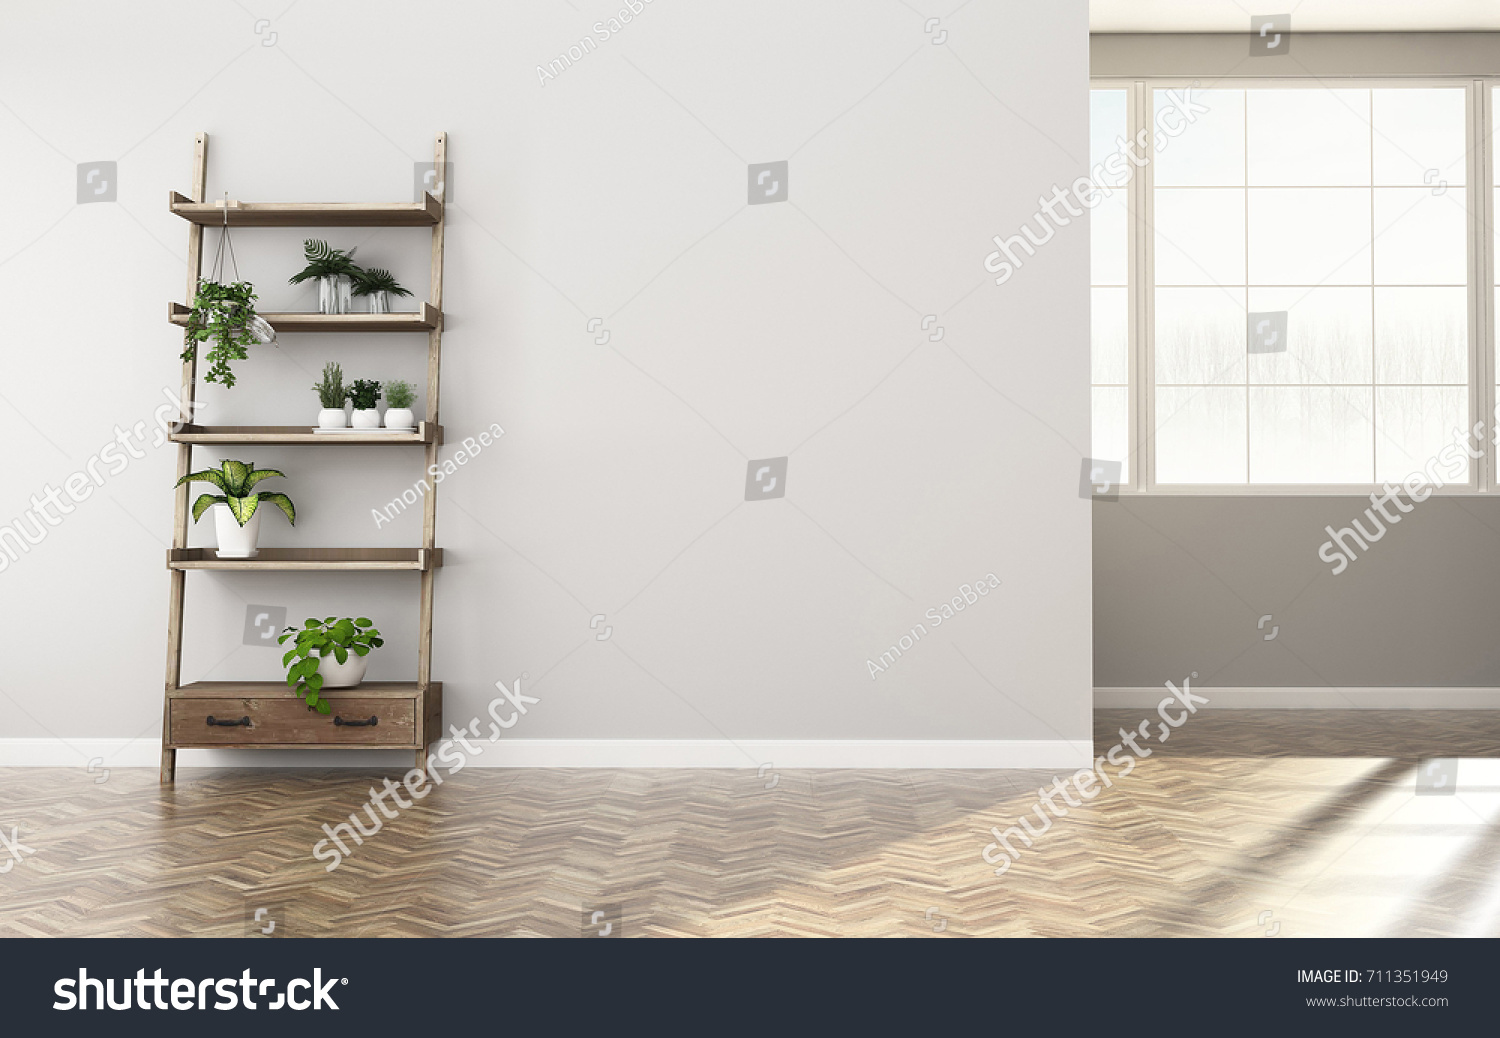 Storage Space In Apartment. Empty Room With Shelf. Vintage Interior Design.   3d